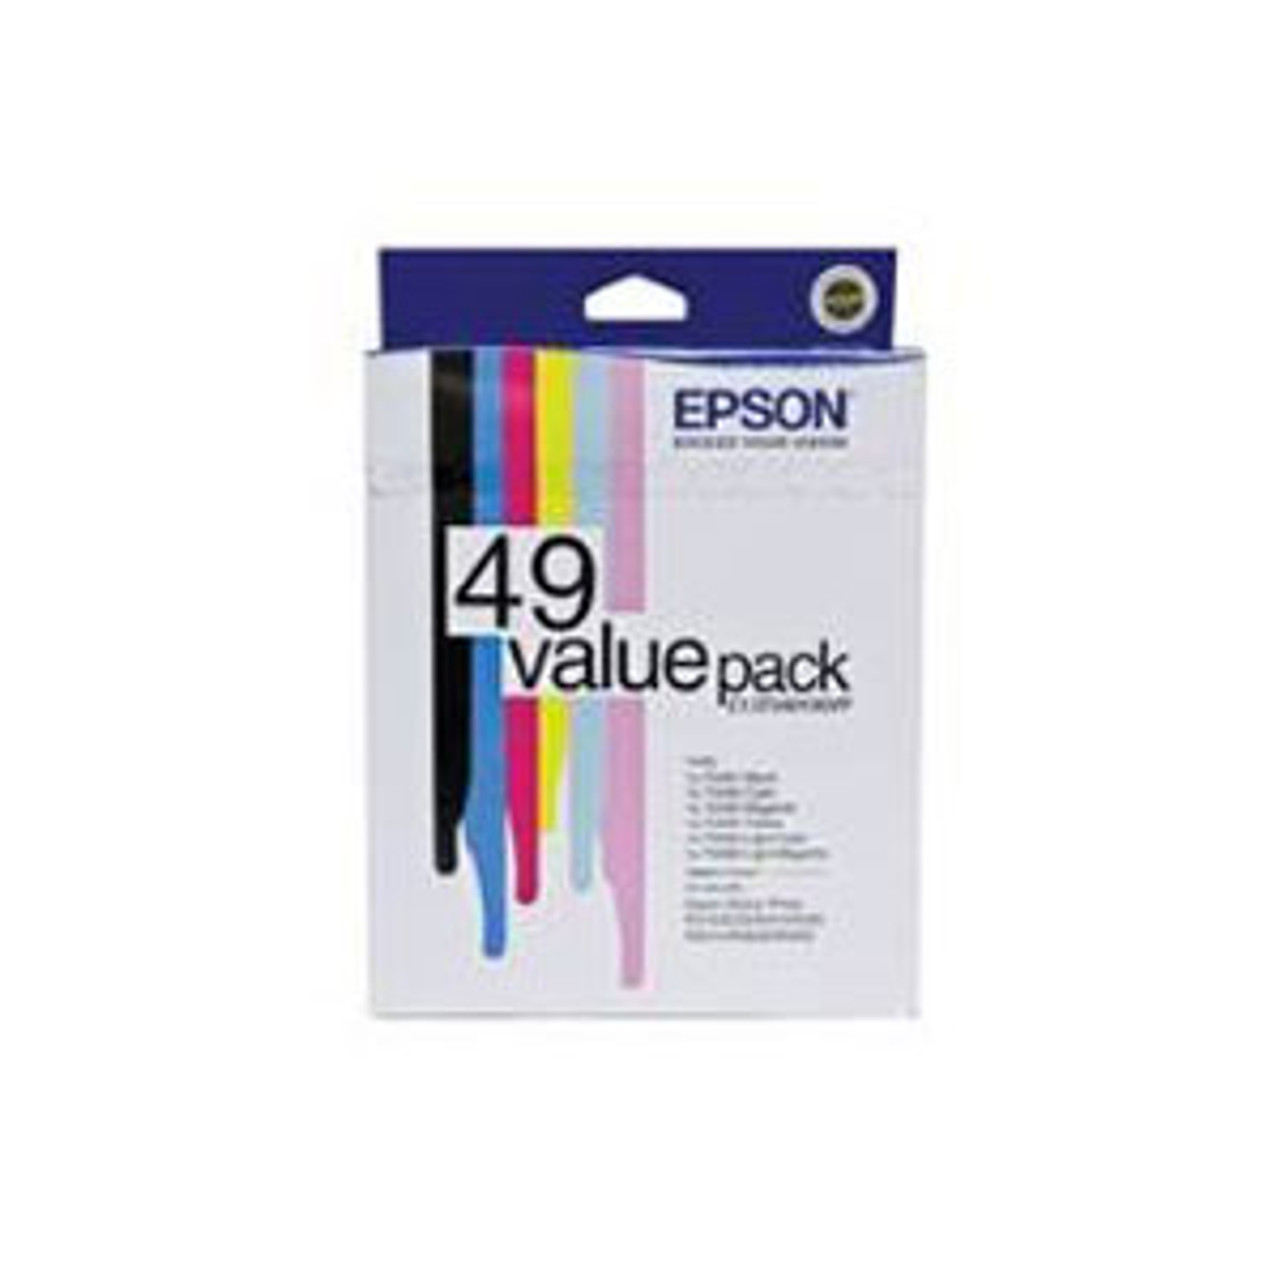 Image for Epson 49 Ink Value Pack col 430 pages Blk 420 pages Misc Consumables CX Computer Superstore